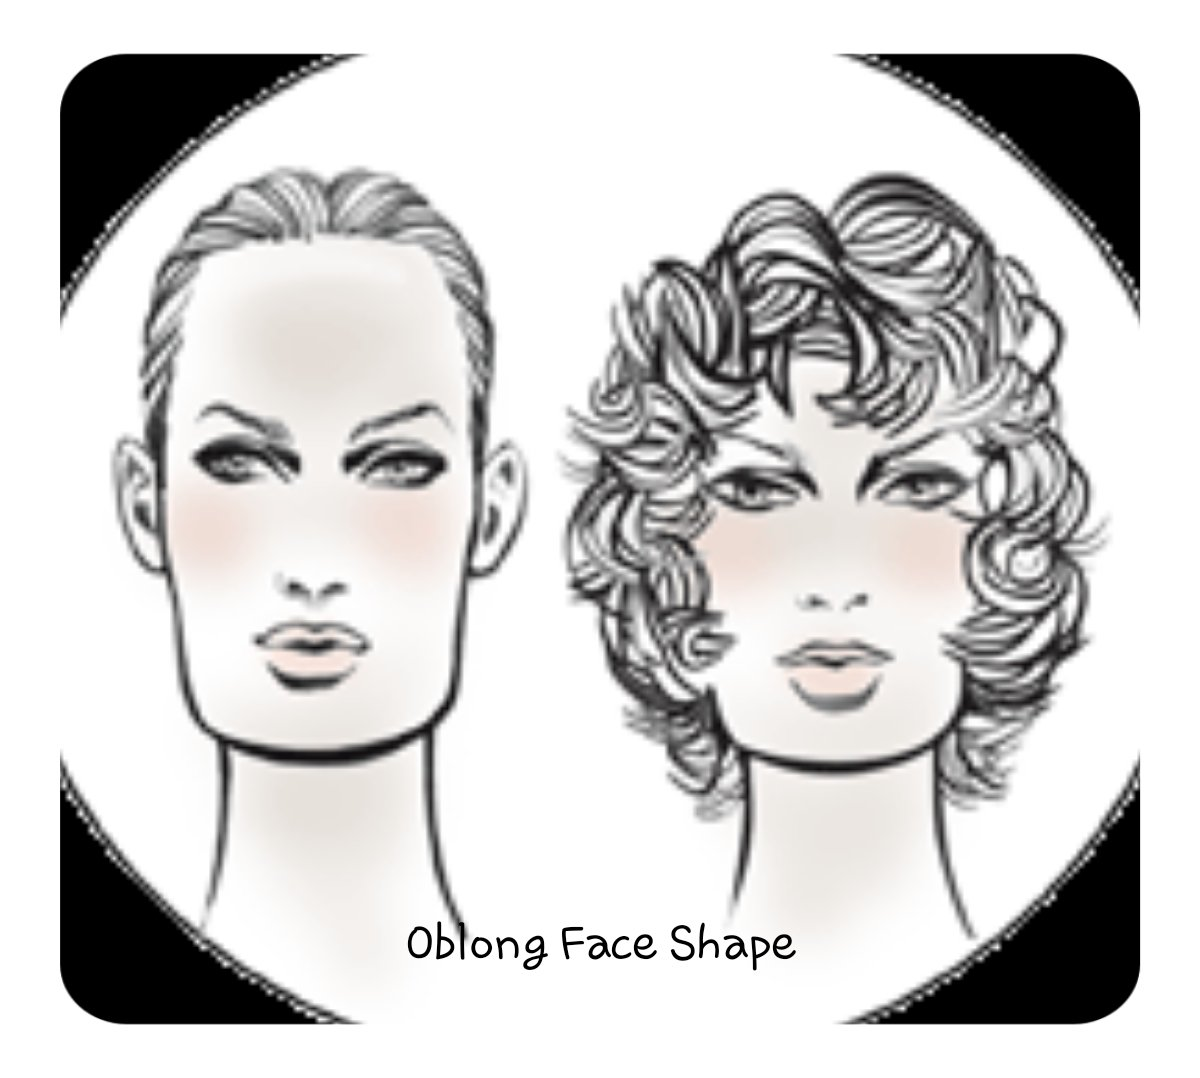 Oblong Face shape for hair extension